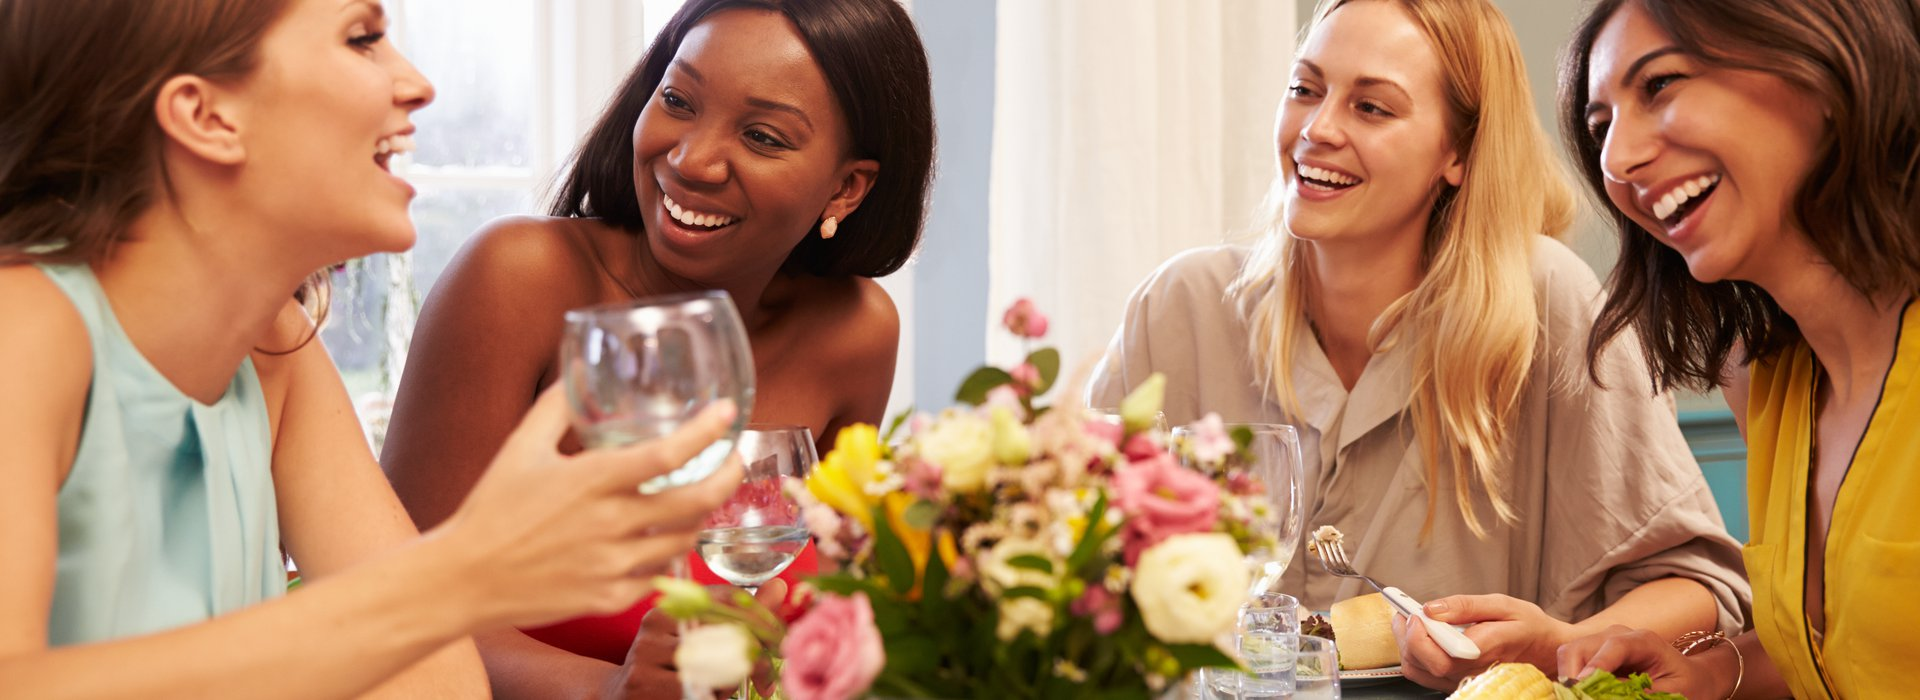 Female Friends At Home Sitting Around Table For Dinner Party